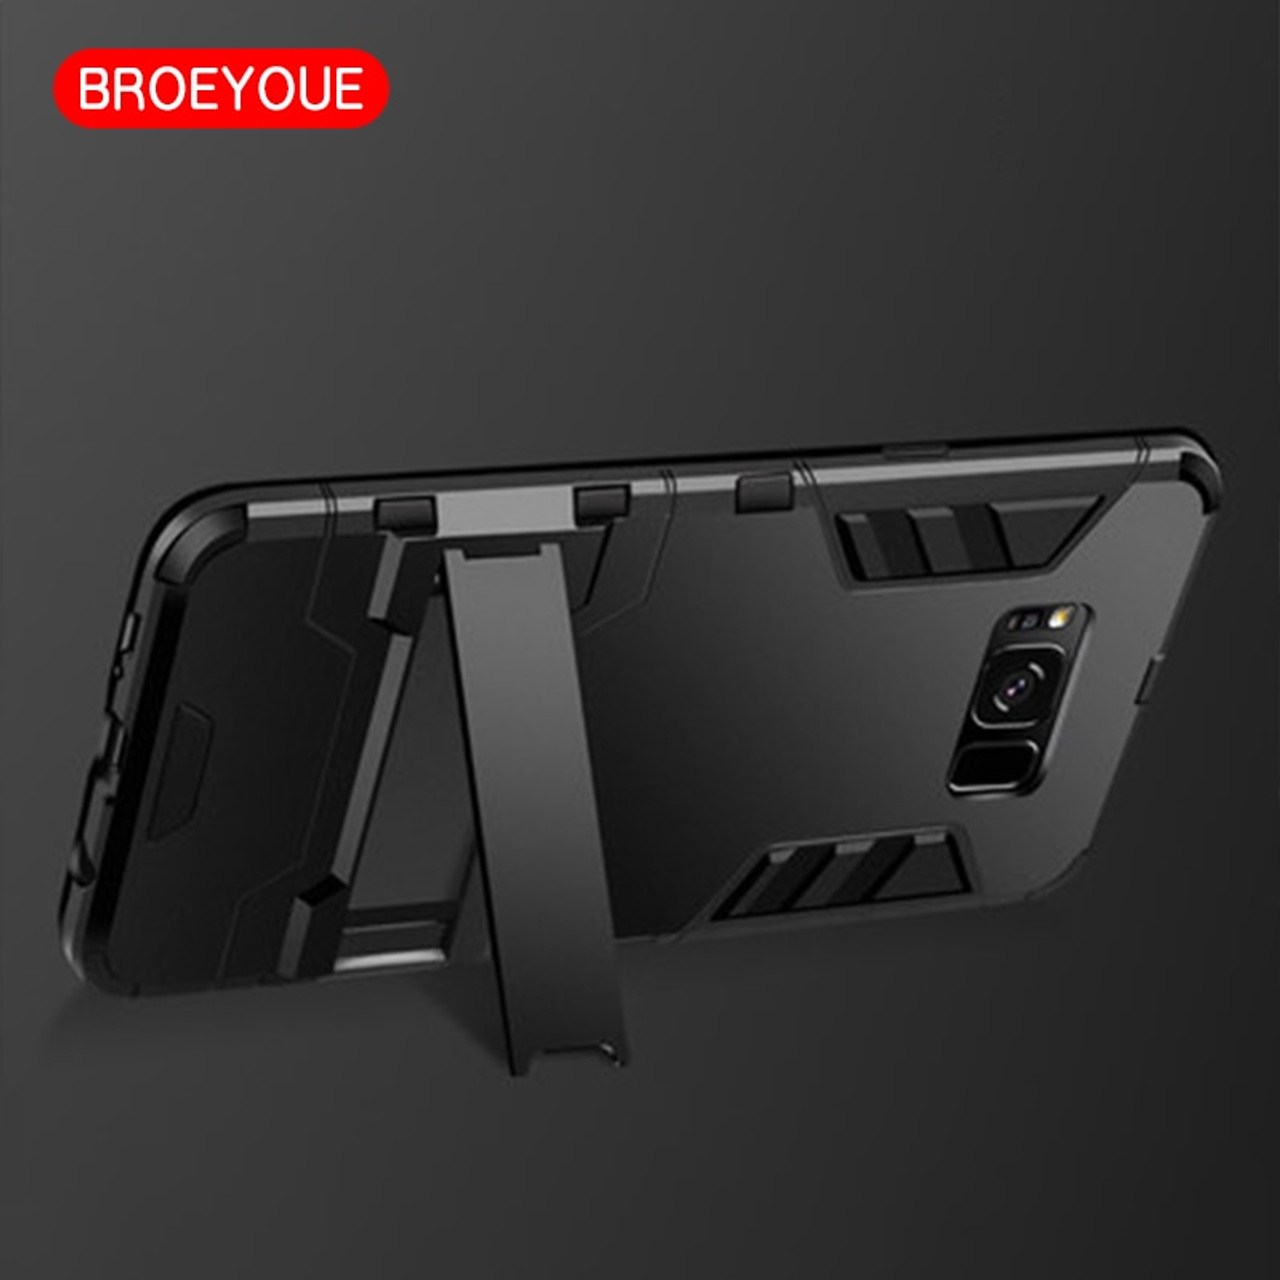 Armor Case For Samsung Galaxy S7 S8 Edge S9 S10 Plus Note 4 5 8 9 Case For  Samsung J3 J4 J5 J6 J7 A3 A5 A7 A8 A9 Plus 2017 2018